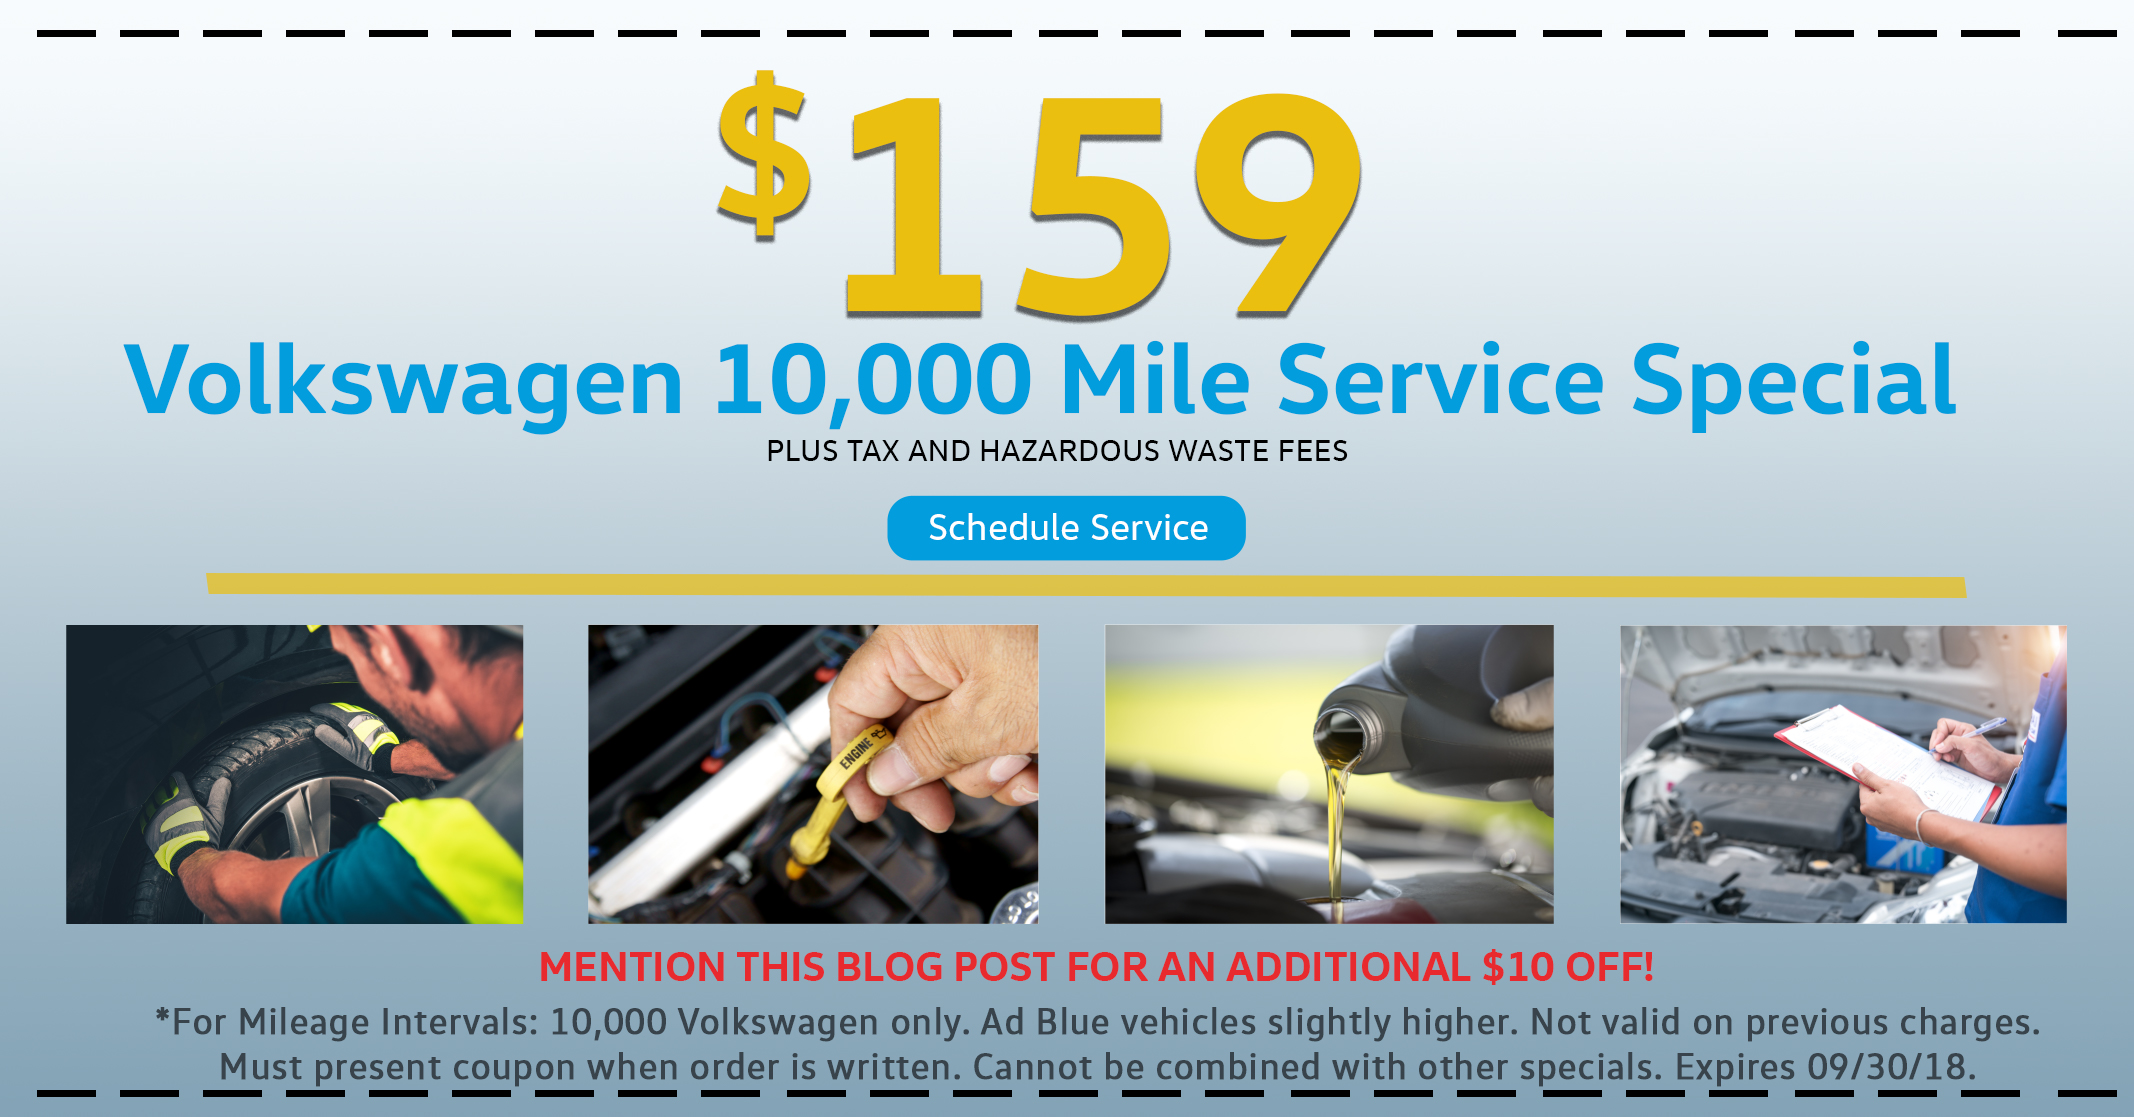 10,000 Mile Summer Service Special